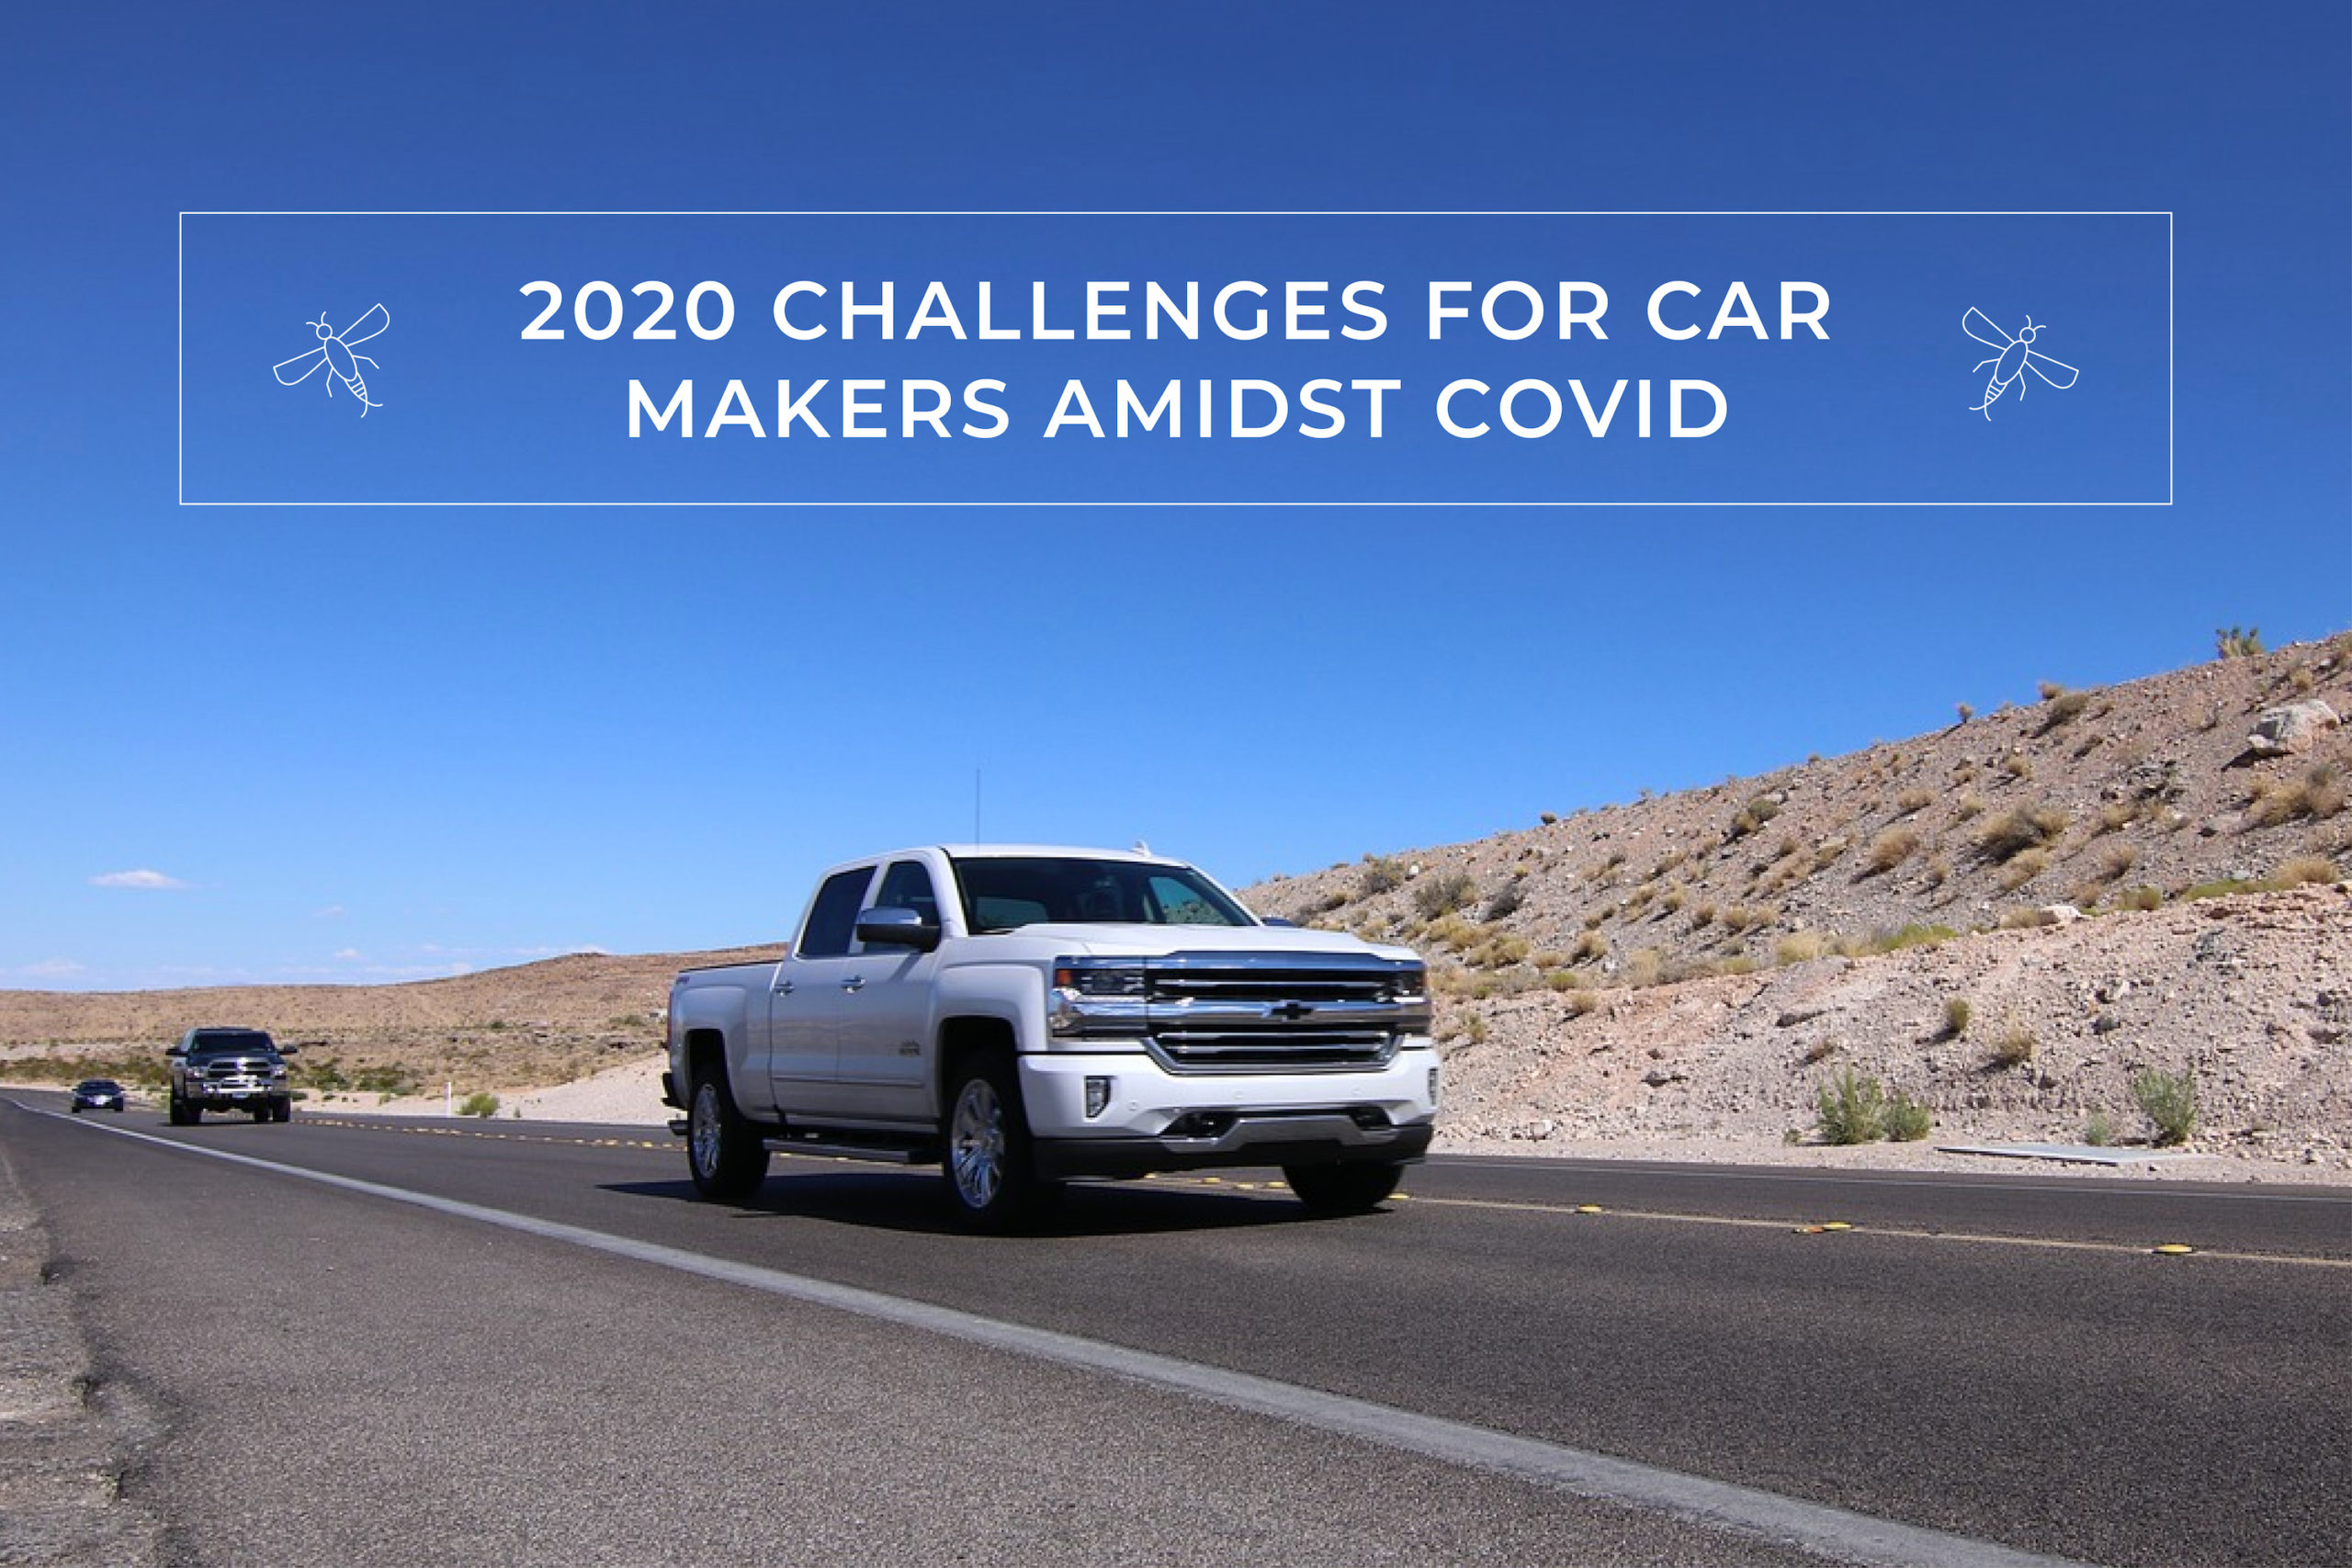 All car makers are dealing with the impact of the COVID pandemic—but two car makers are finding the year 2020 has dealt them some unique challenges.